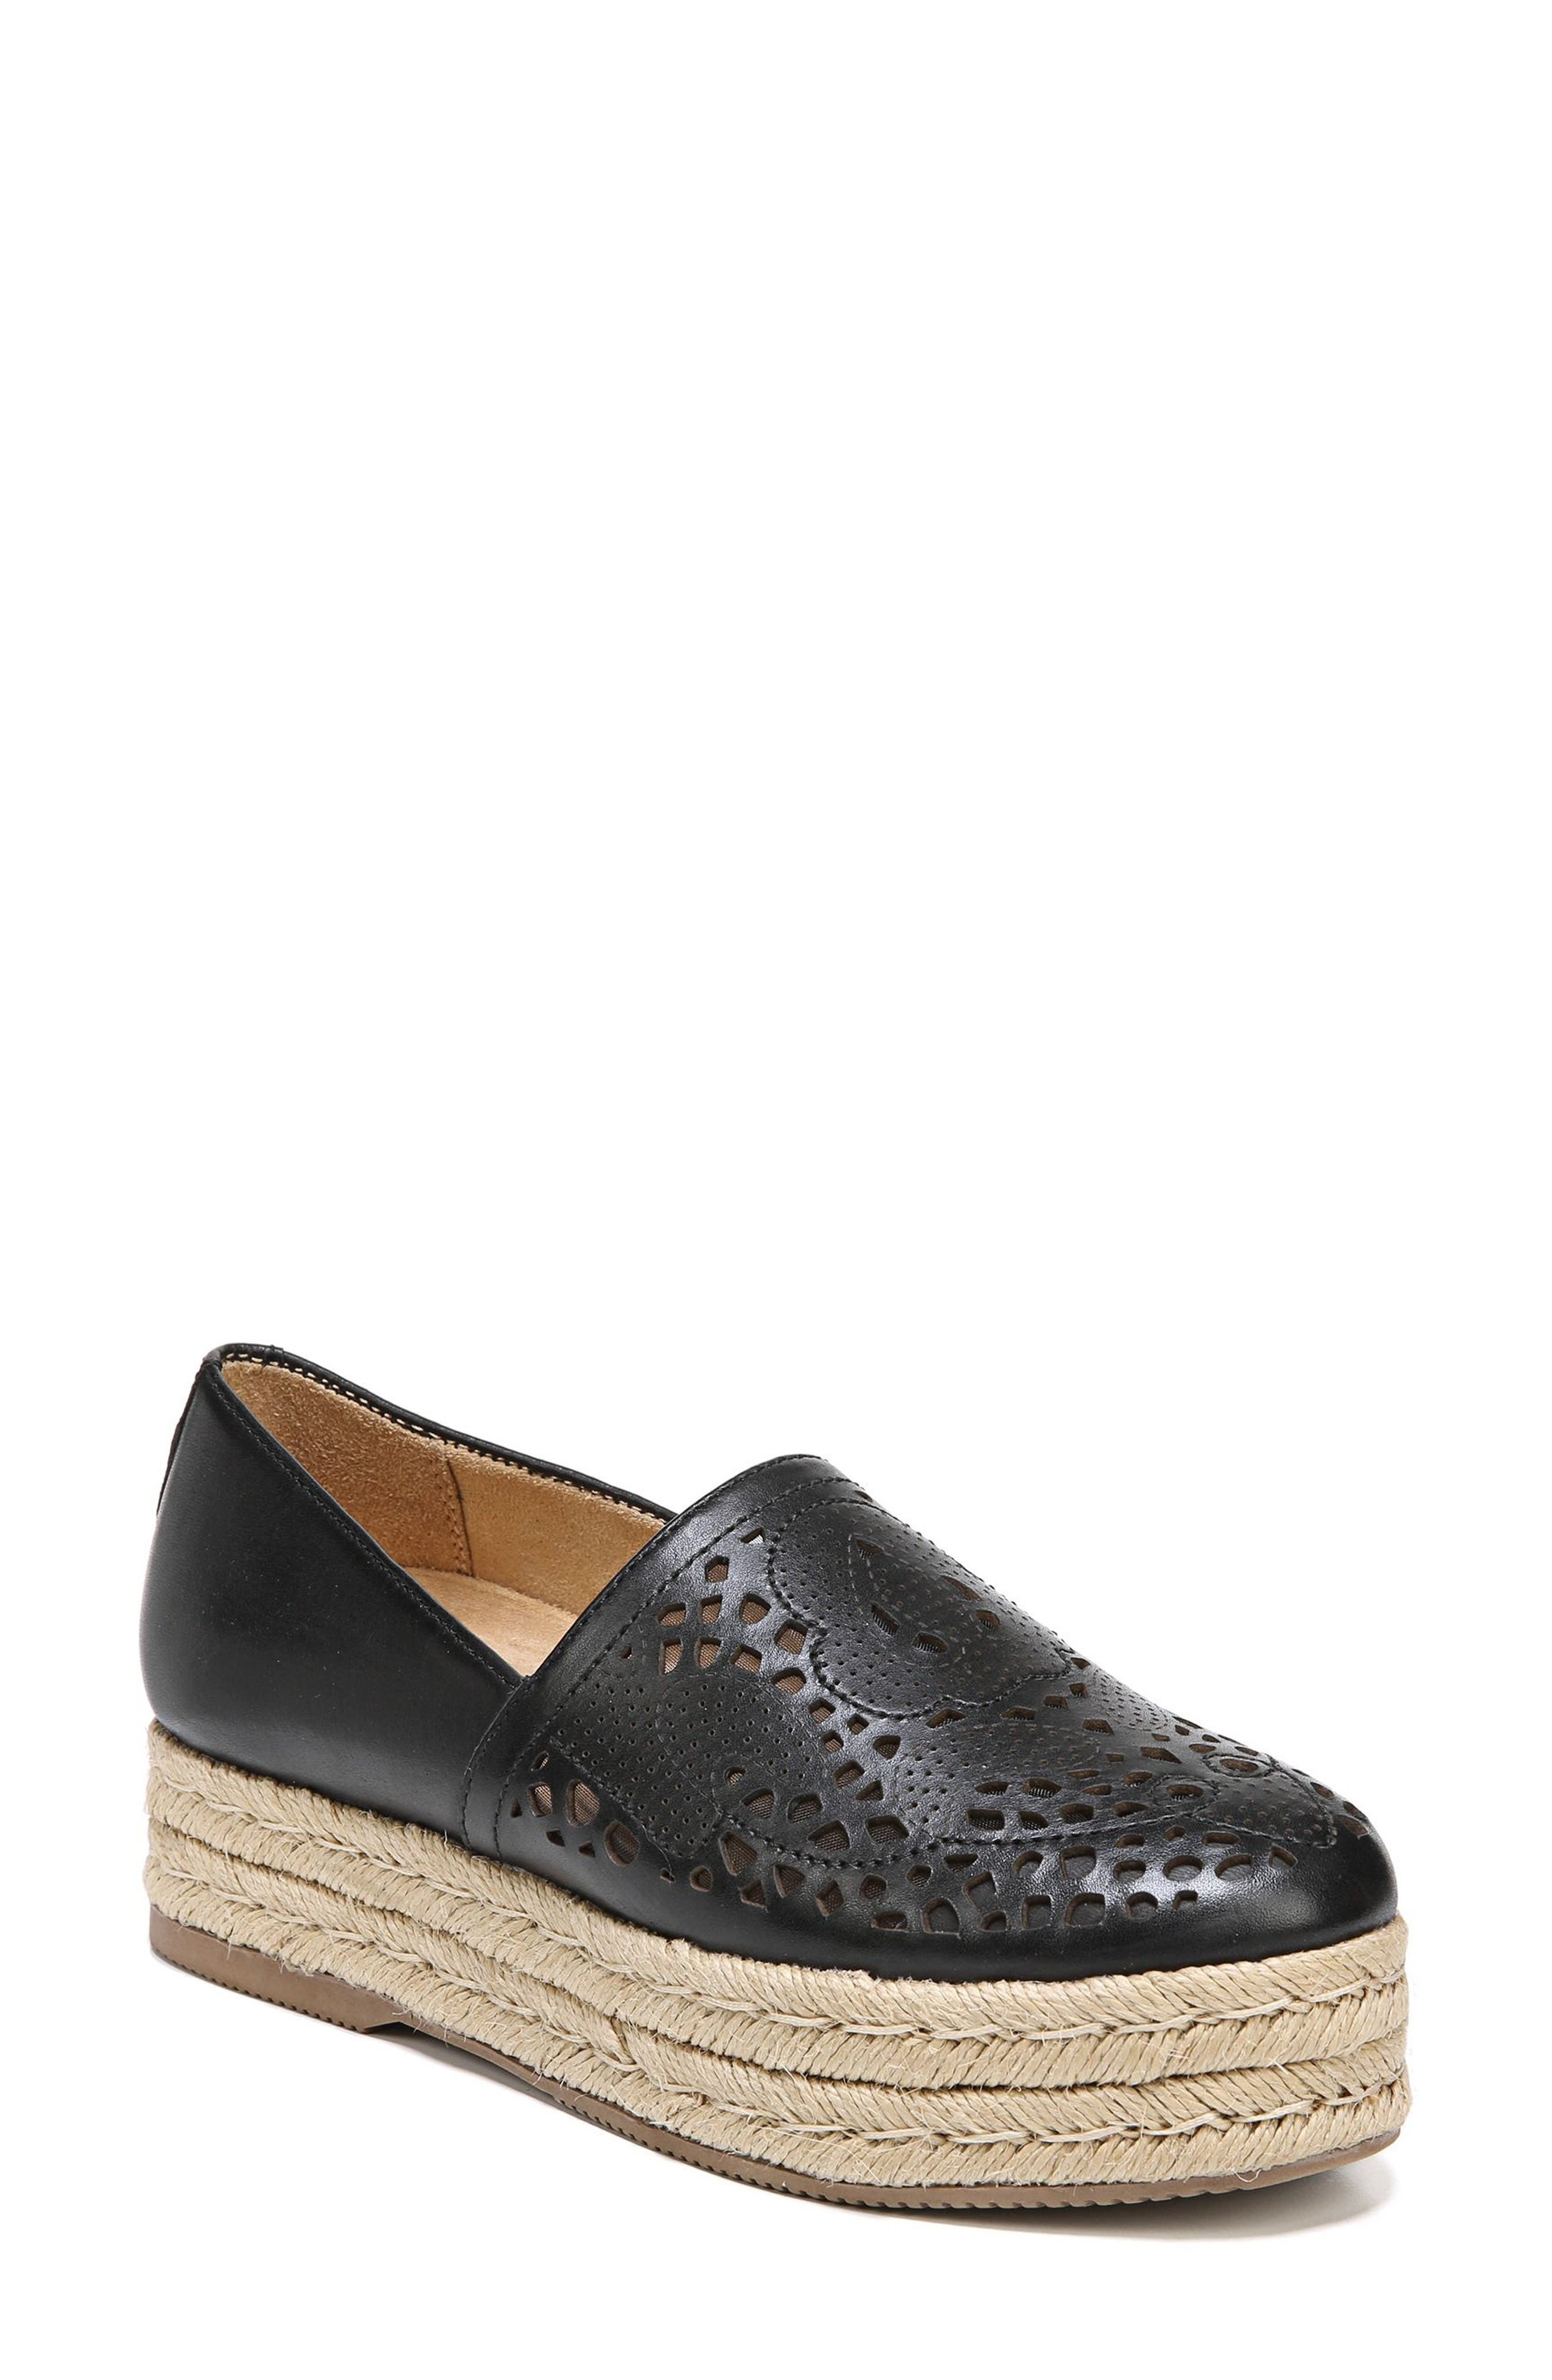 Thea Perforated Platform Espadrille,                             Main thumbnail 1, color,                             001